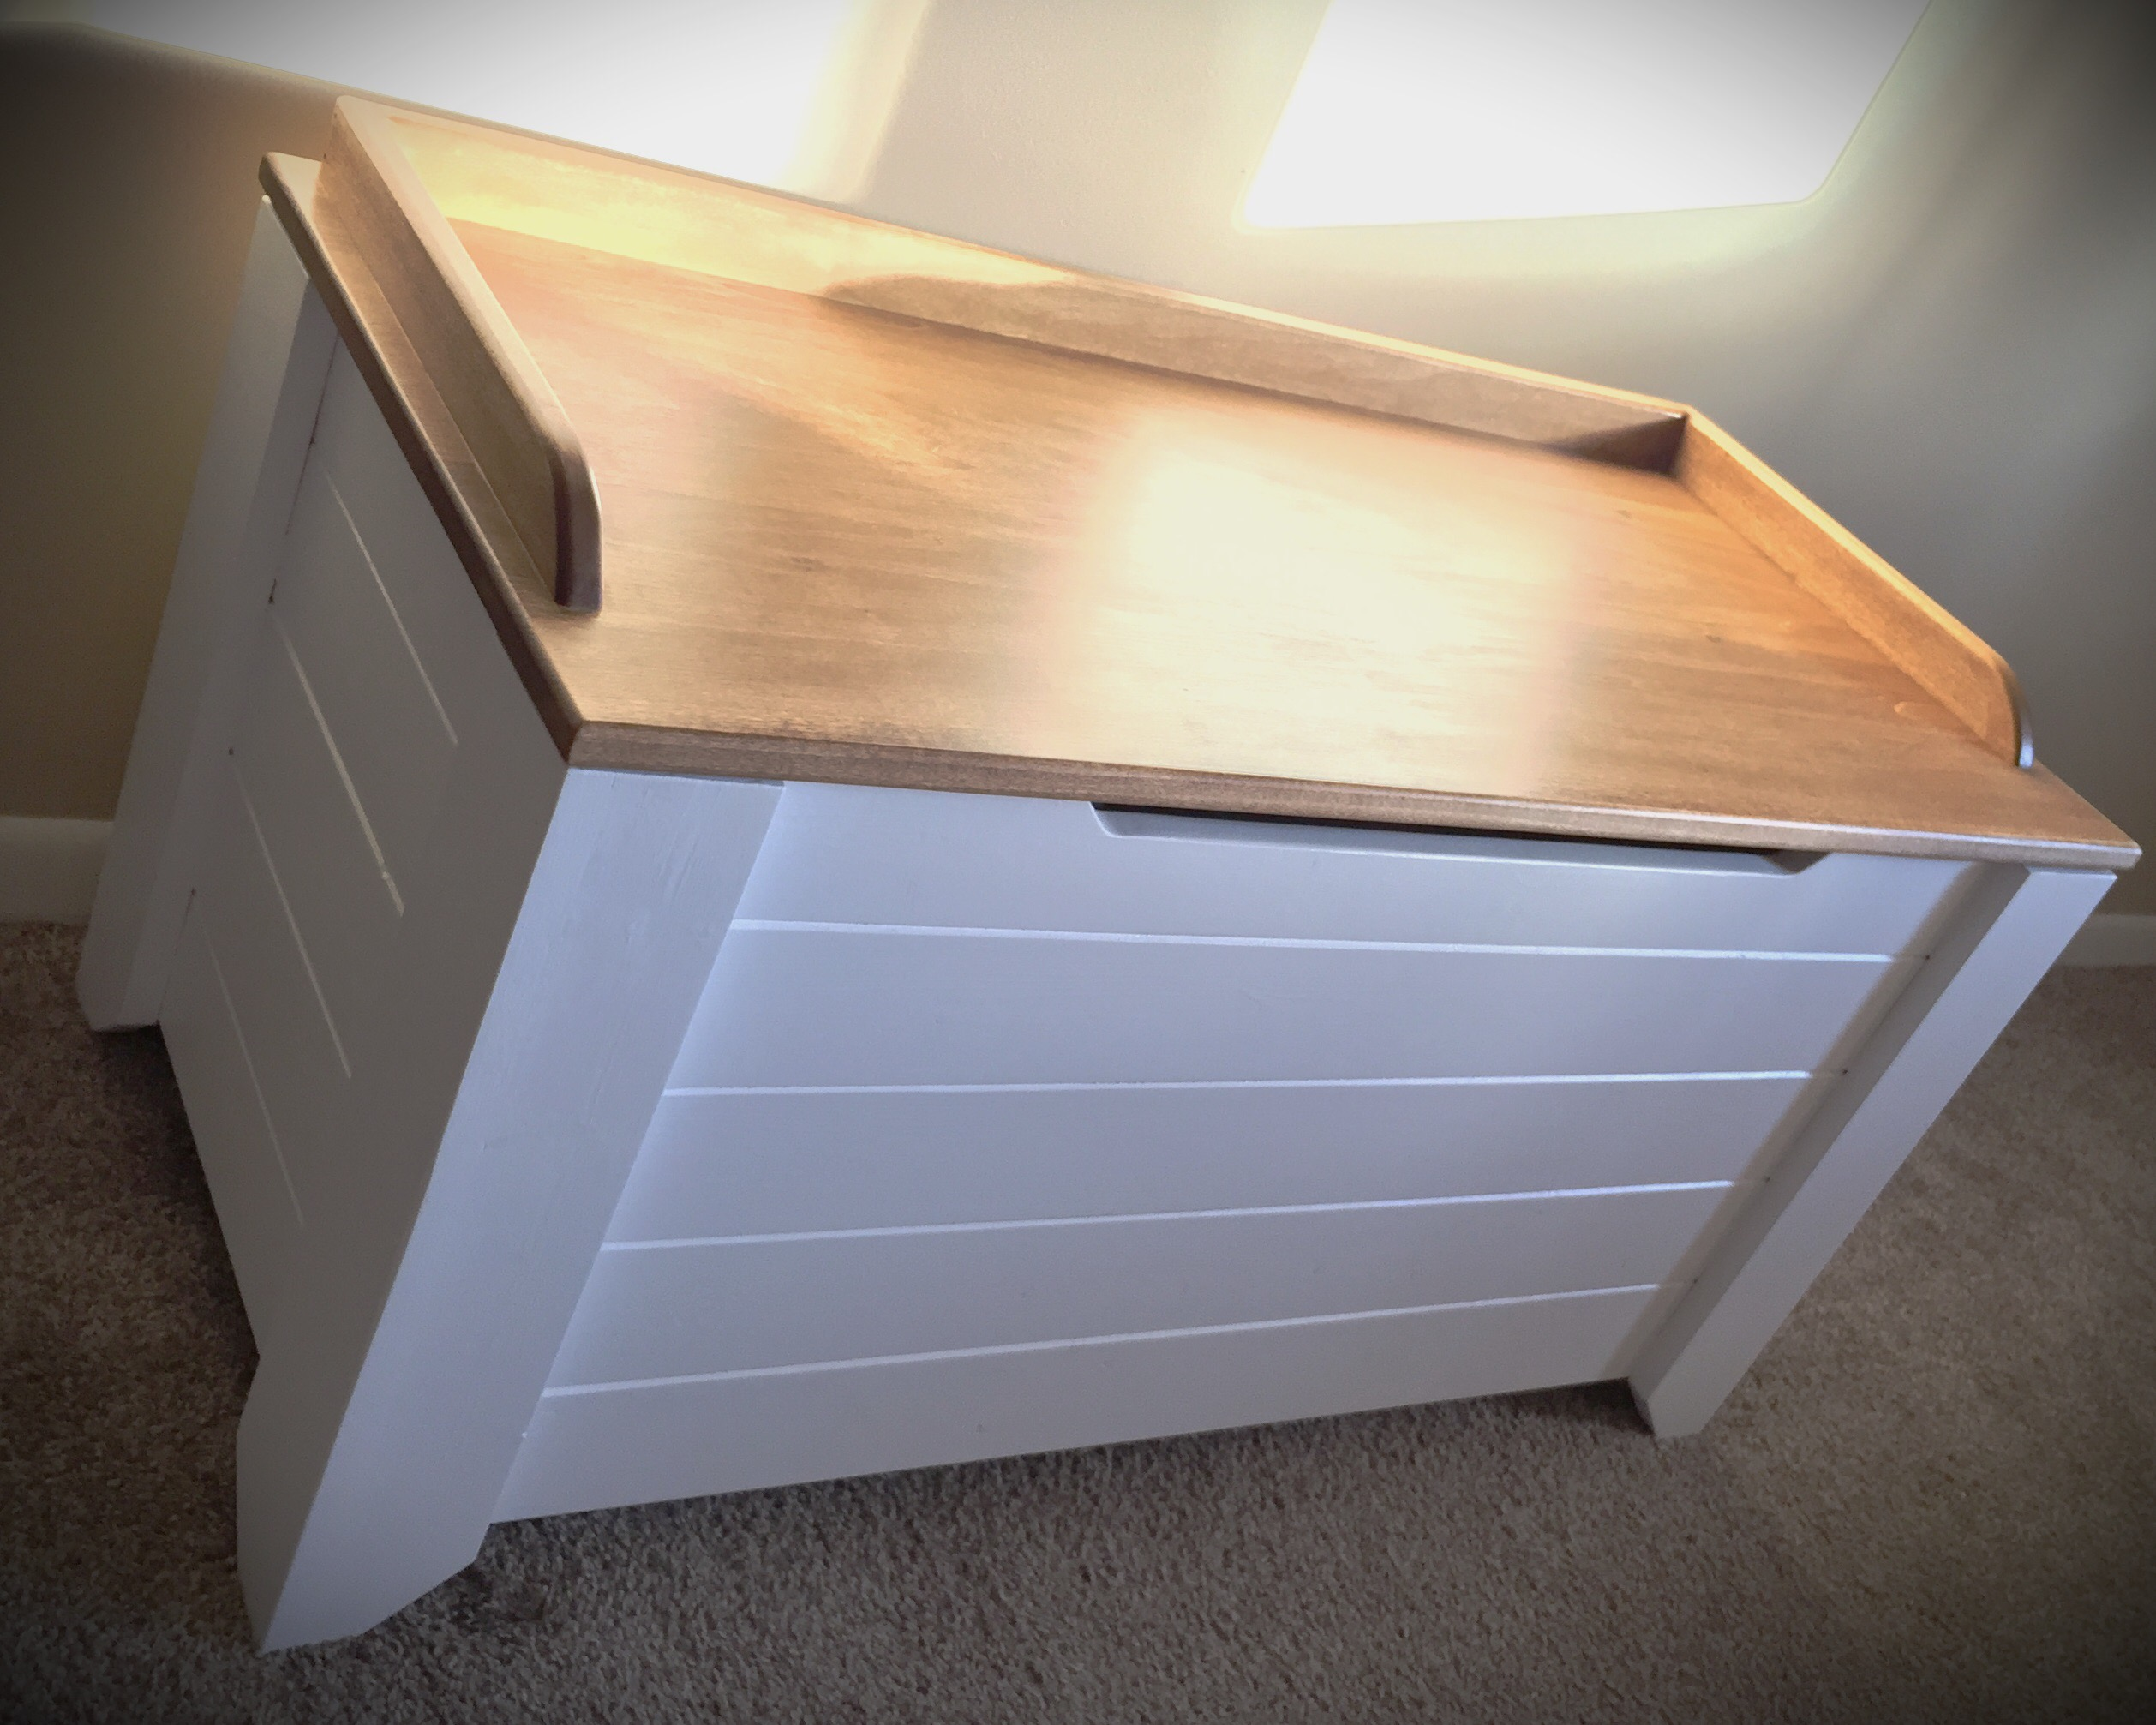 Ana White | Farmhouse Style Toy Box / Blanket Chest - DIY ...